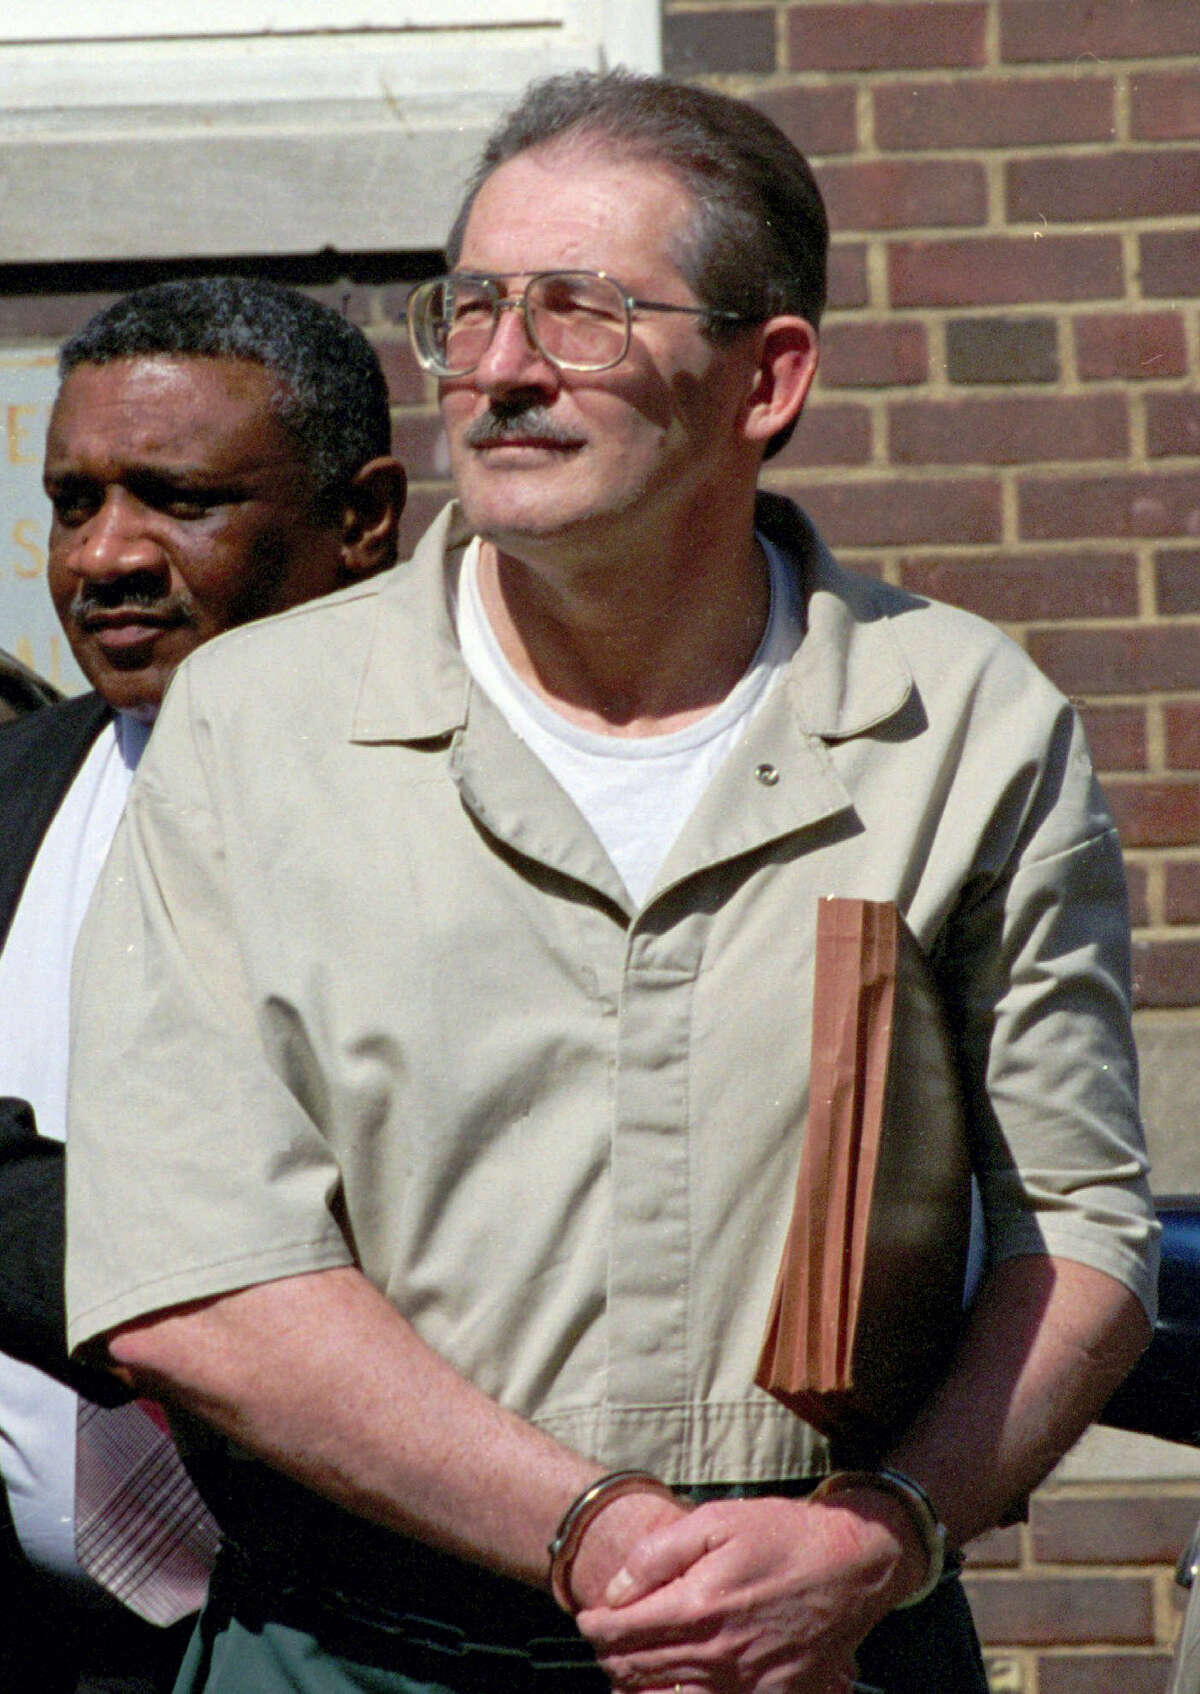 Former CIA agent Aldrich Ames leaves federal court in Alexandria, Va. in 1994. U.S. relations with Moscow during and after the Cold War have been marred by diplomatic dustups ranging from espionage scandals to an Olympics boycott.